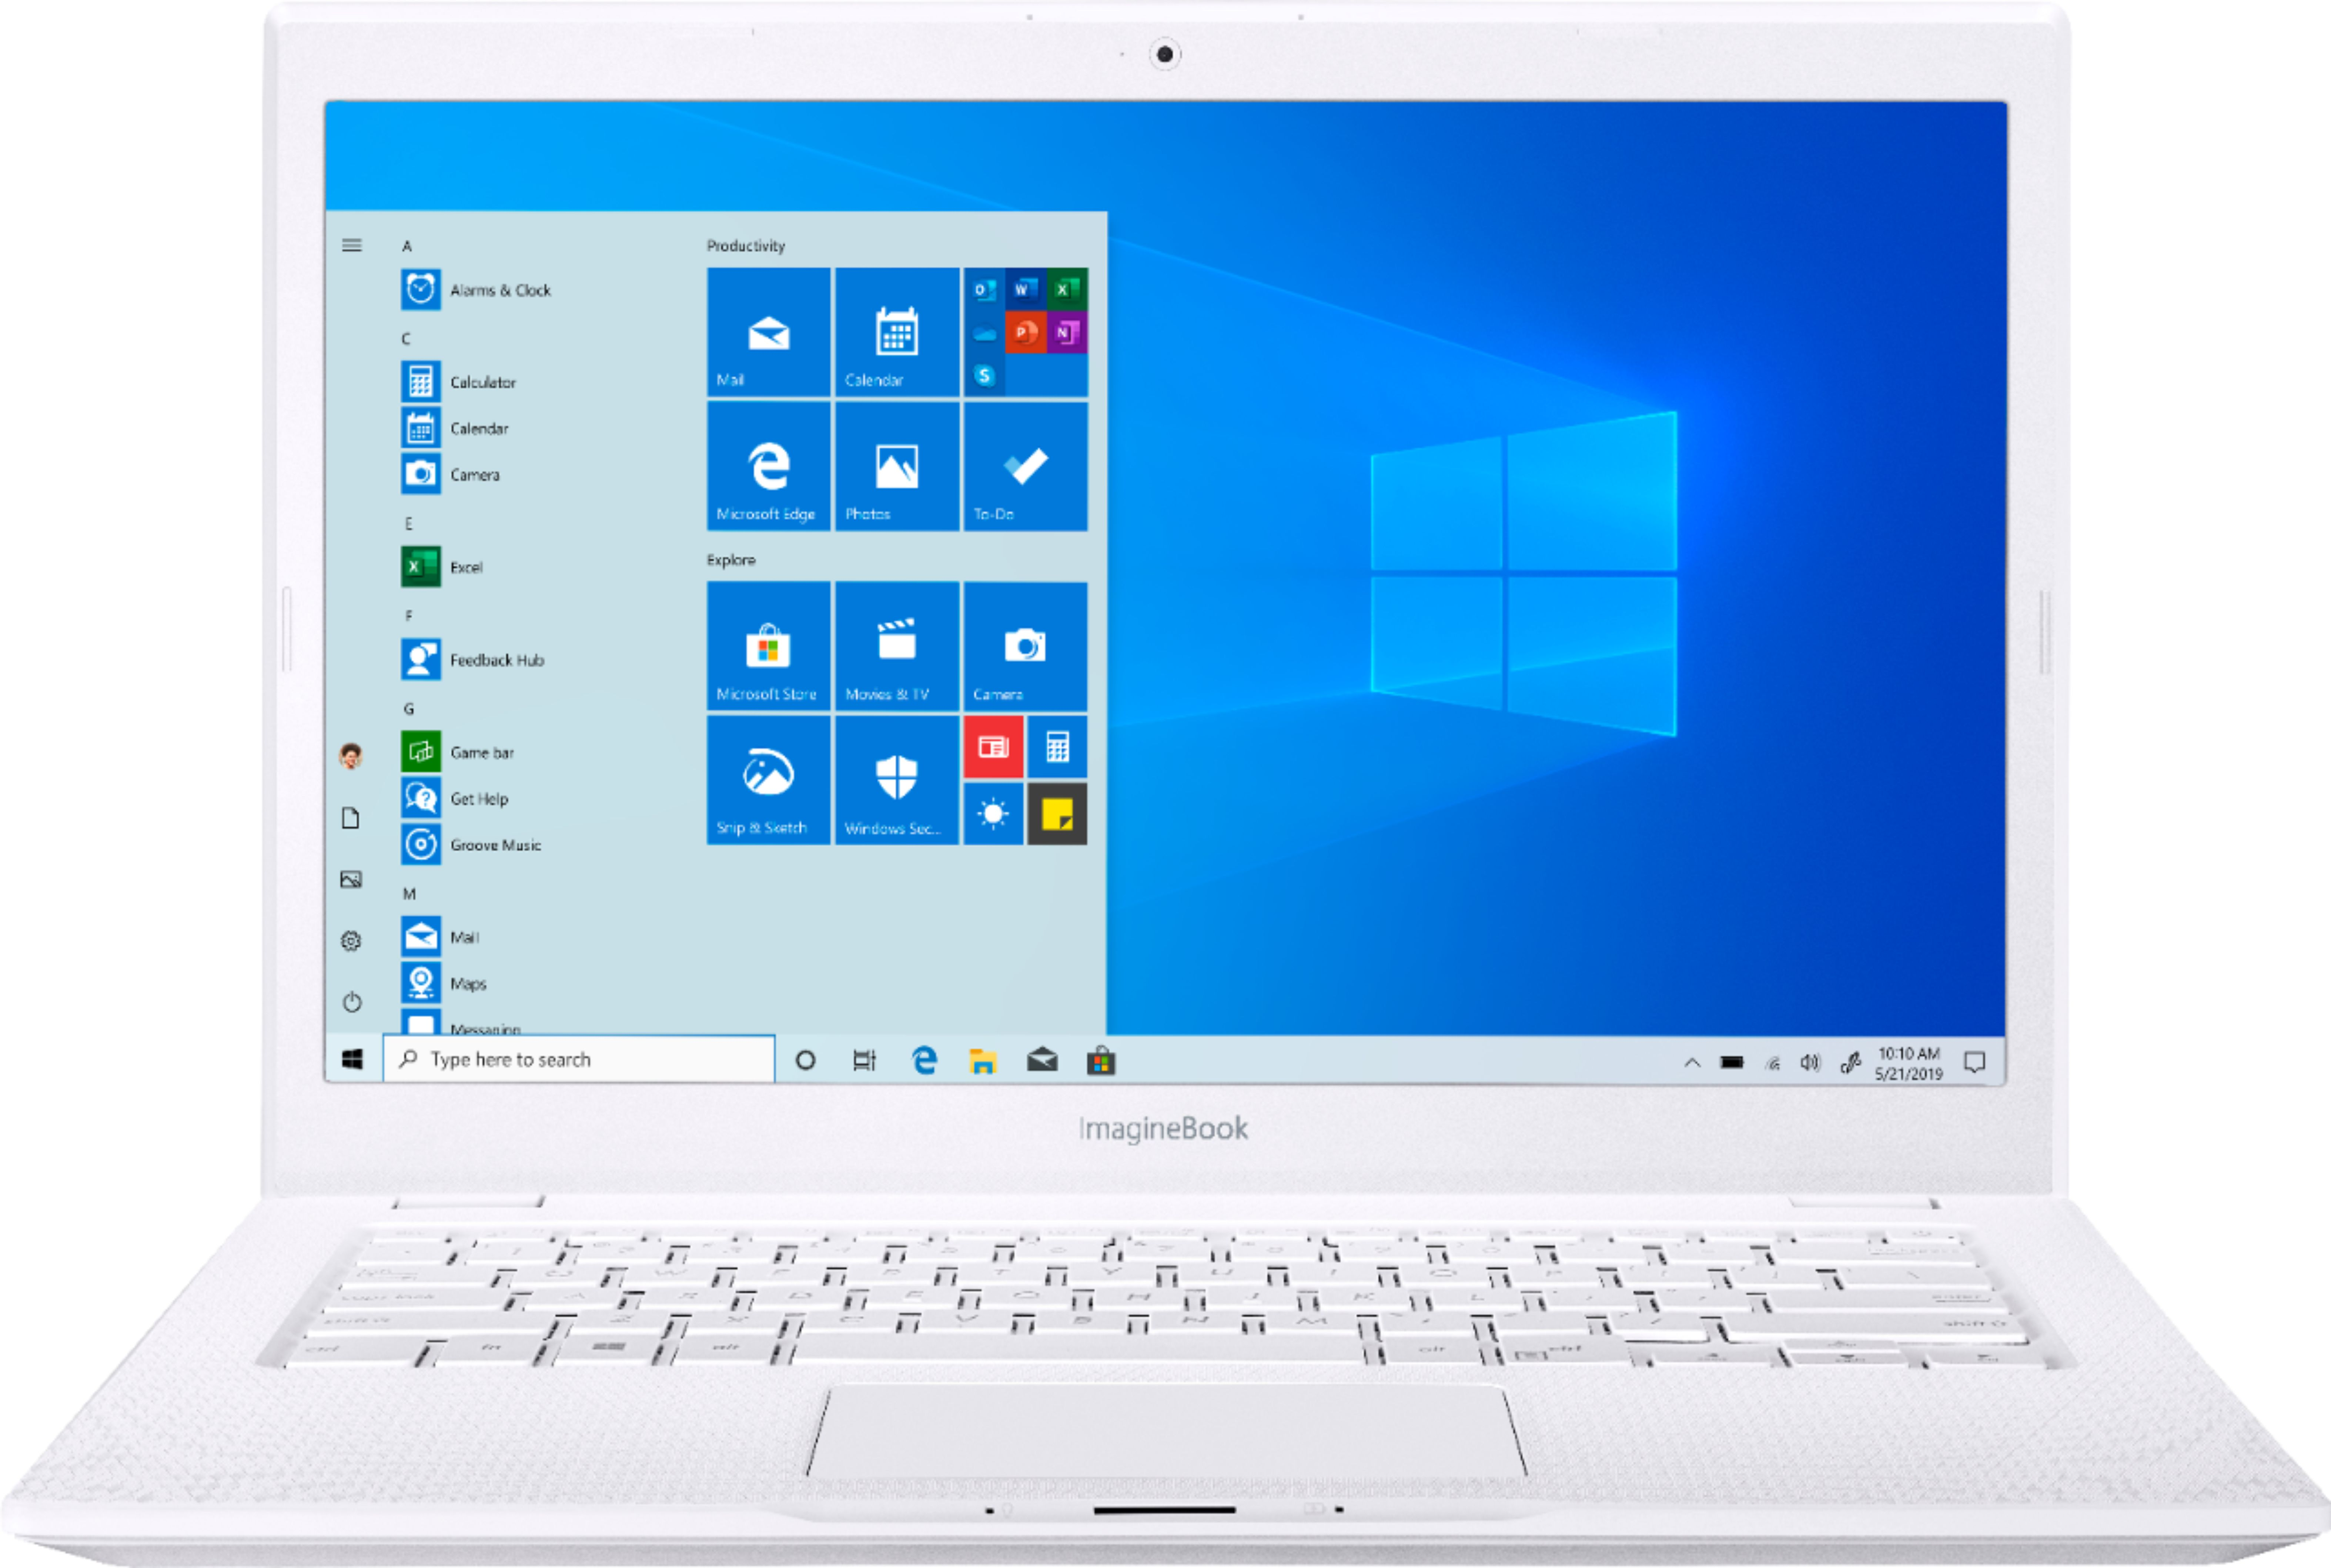 """Front Zoom. ASUS - Geek Squad Certified Refurbished ImagineBook 14"""" Laptop - Intel Core m3 - 4GB Memory - 128GB Solid State Drive - Textured White."""